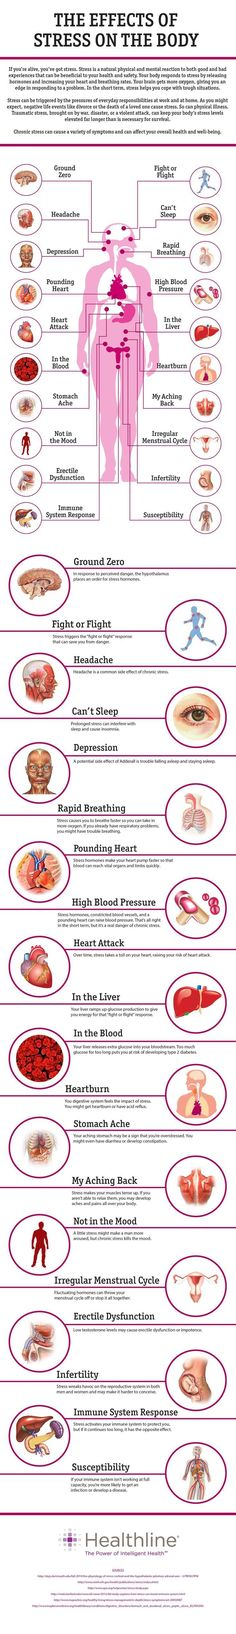 20 Effects Of Stress On The Body=> www.healthline.co/... #stress: http://www.healthline.co/m/health/stress/effects-on-body?utm_content=buffer78da0&utm_medium=social&utm_source=pinterest.com&utm_campaign=buffer